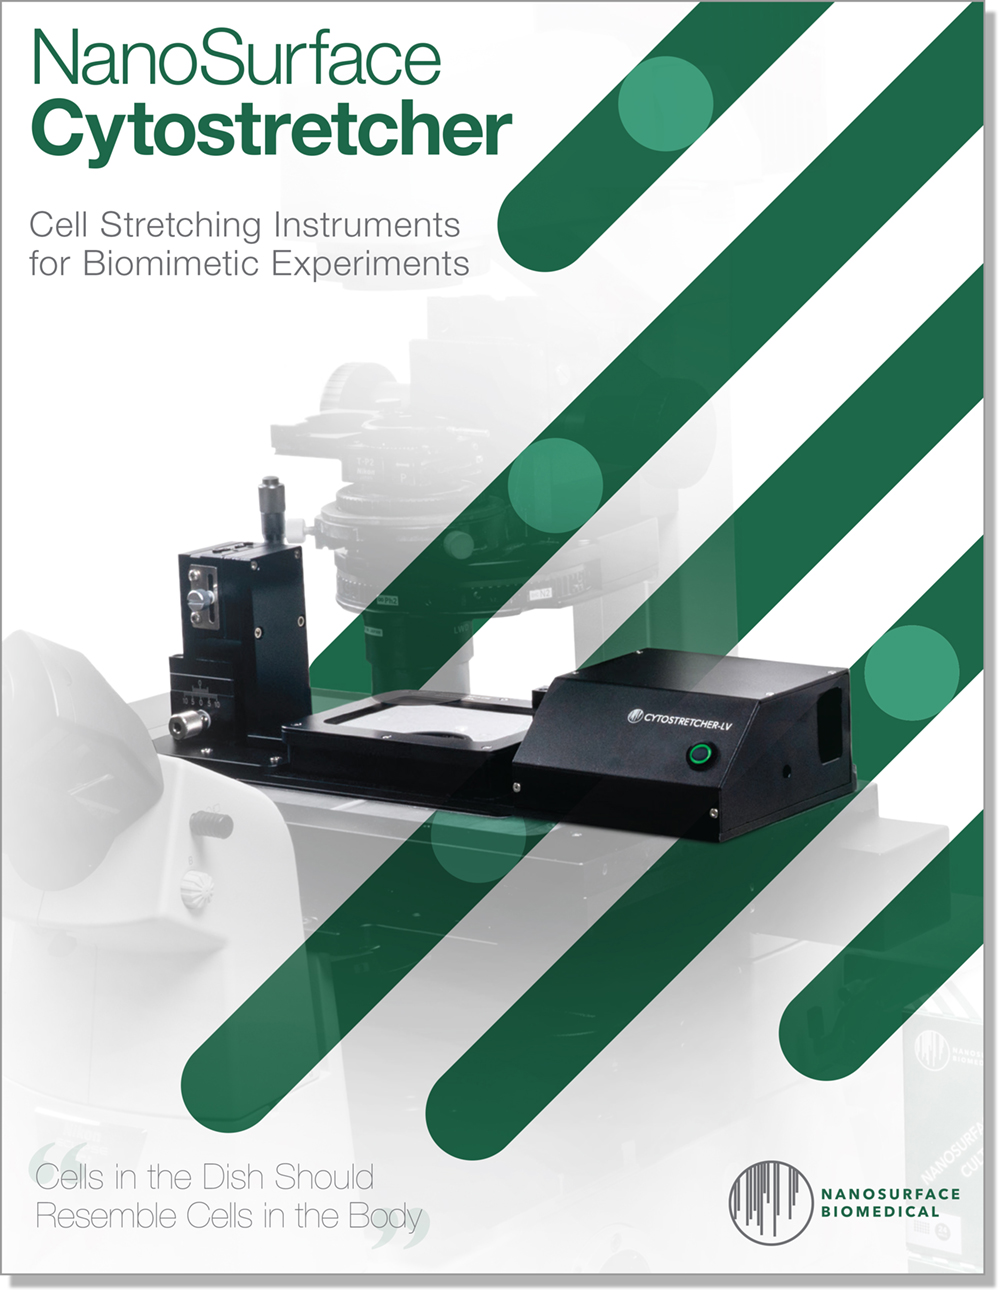 NanoSurface Cytostretcher Brochure - Download the NanoSurface Cytostretcher product brochure for general information about NanoSurface Cytostretcher and Cytostretcher-LV products in a convenient PDF format. For additional information, please contact support@nanosurfacebio.com.